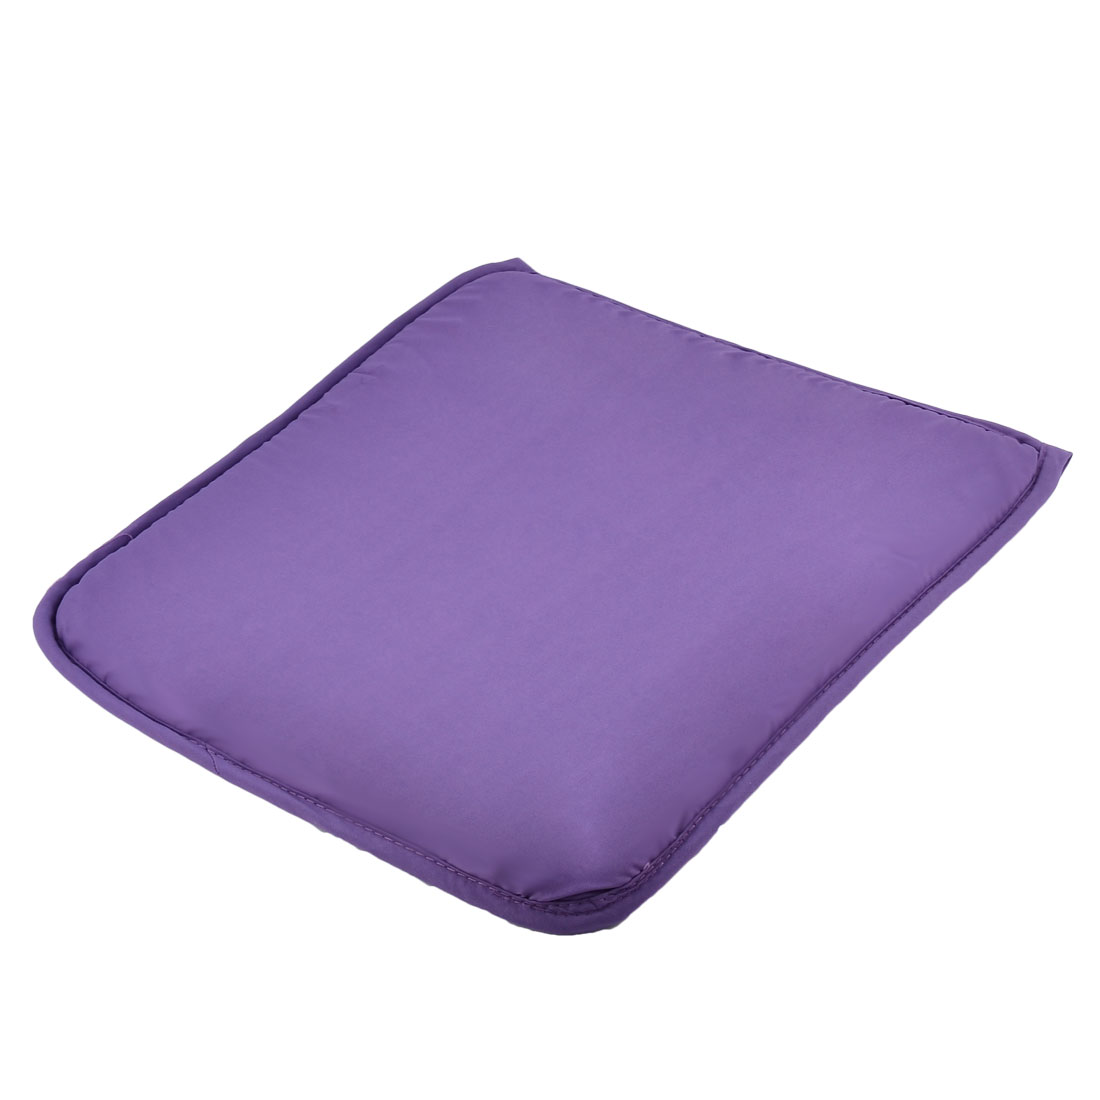 Home Office Sponge Solid Anti Slip Seat Chair Cushion Pad Cover Purple 39 x 39cm